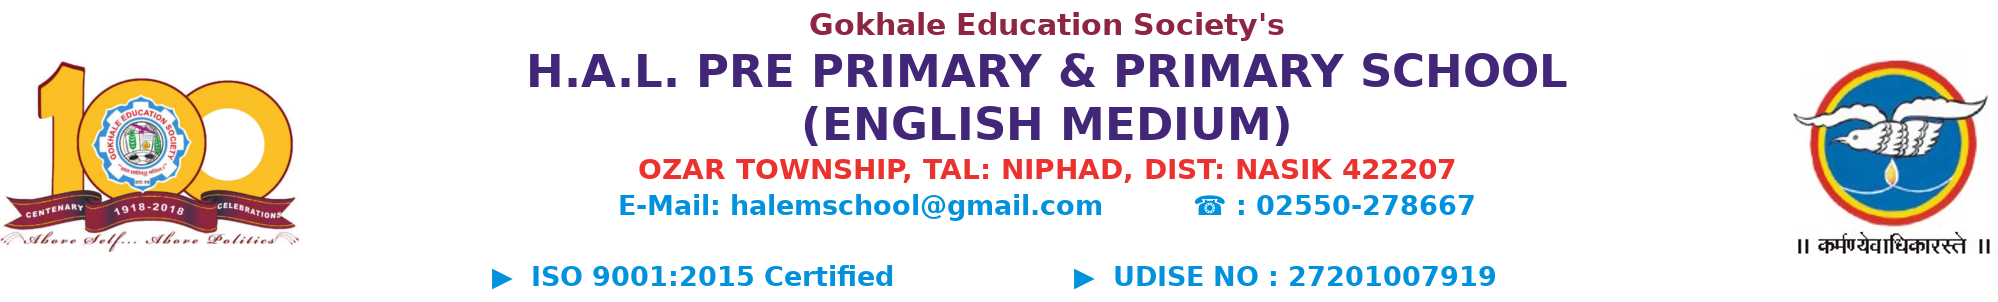 GES H.A.L. Pre Primary and Primary English Medium School